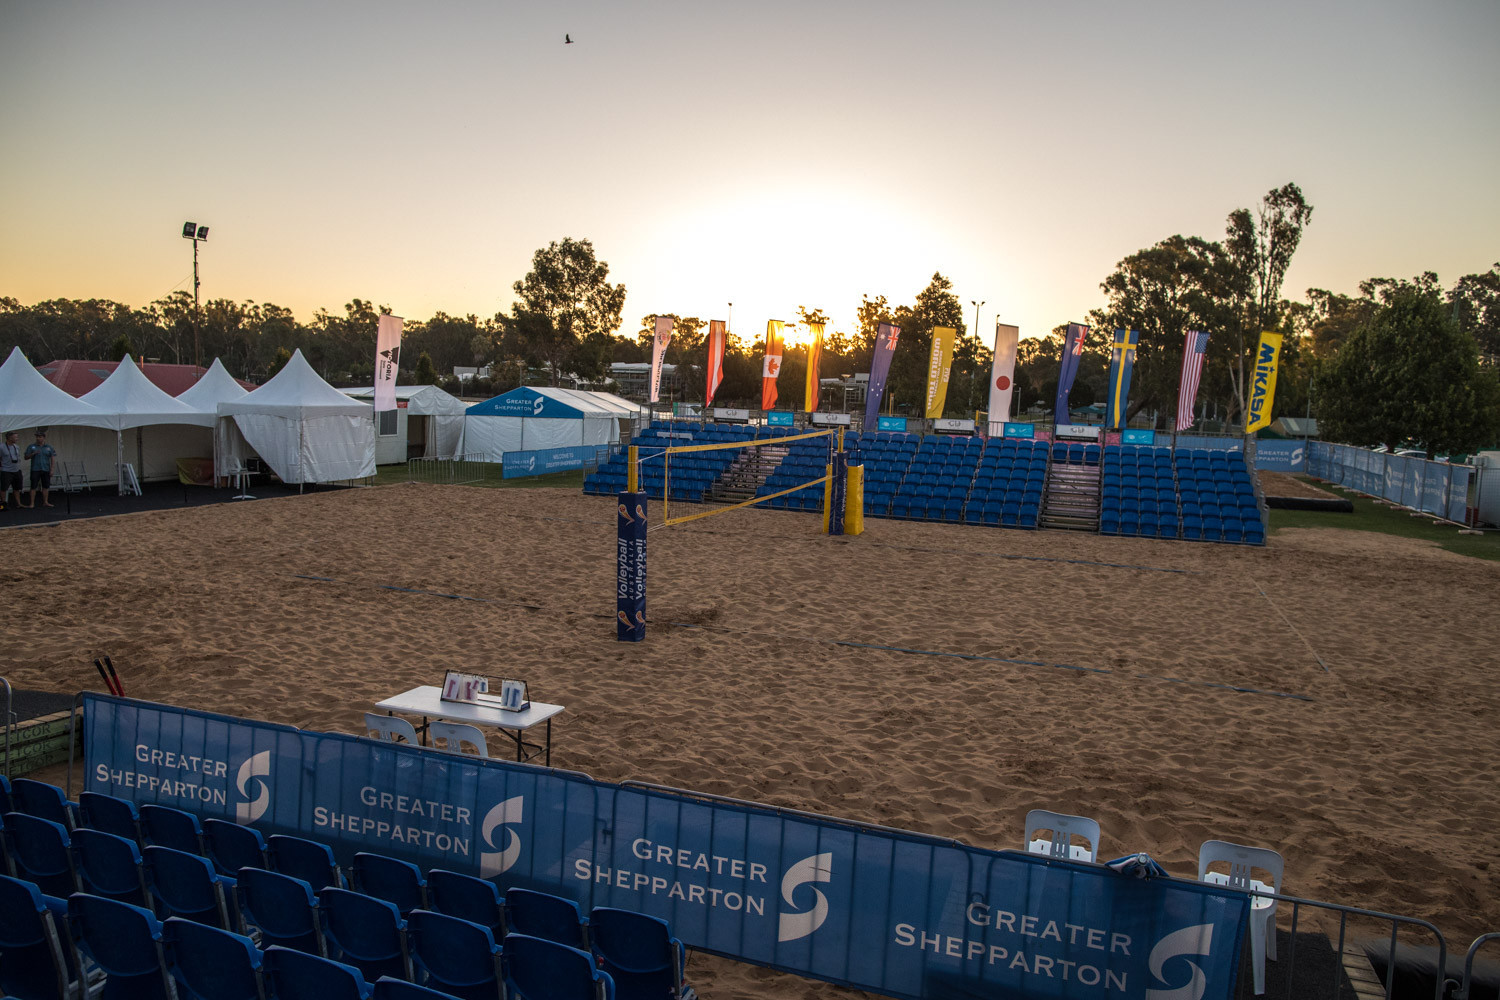 The competition in Shepparton will be a testing ground for the new block touch rule ©FIVB